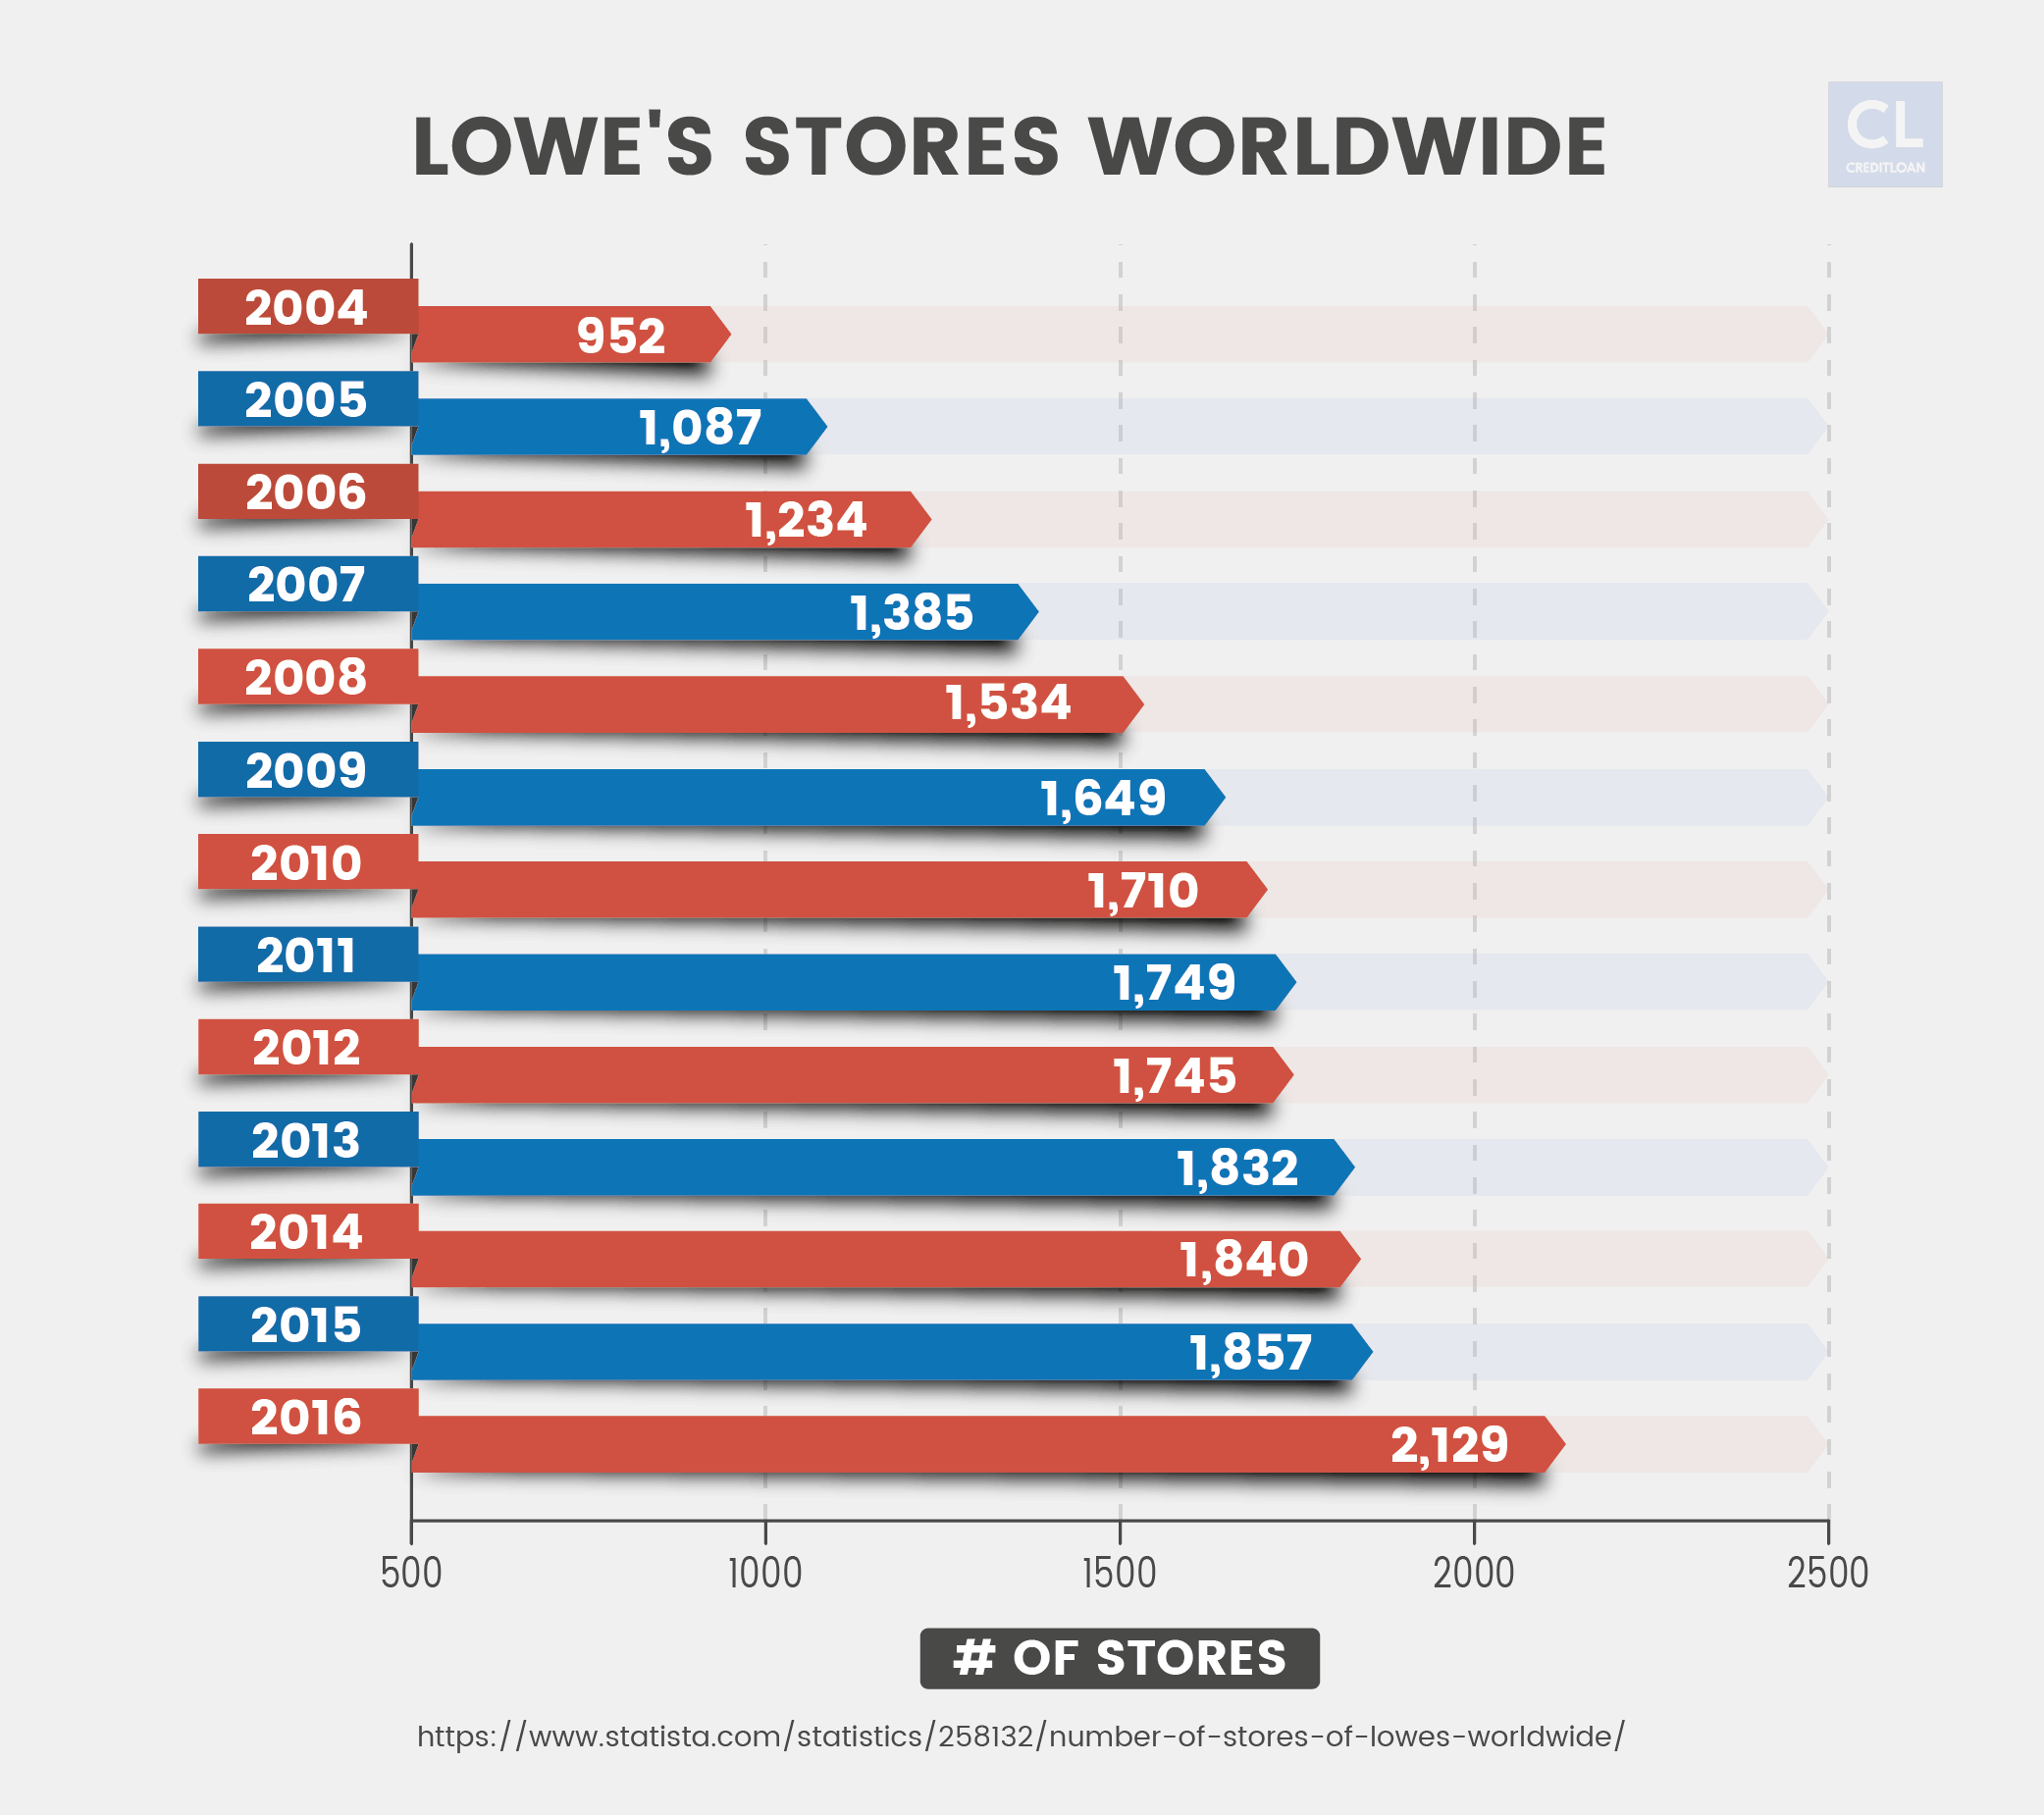 Lowe's Store Worldwide from 2004-2016